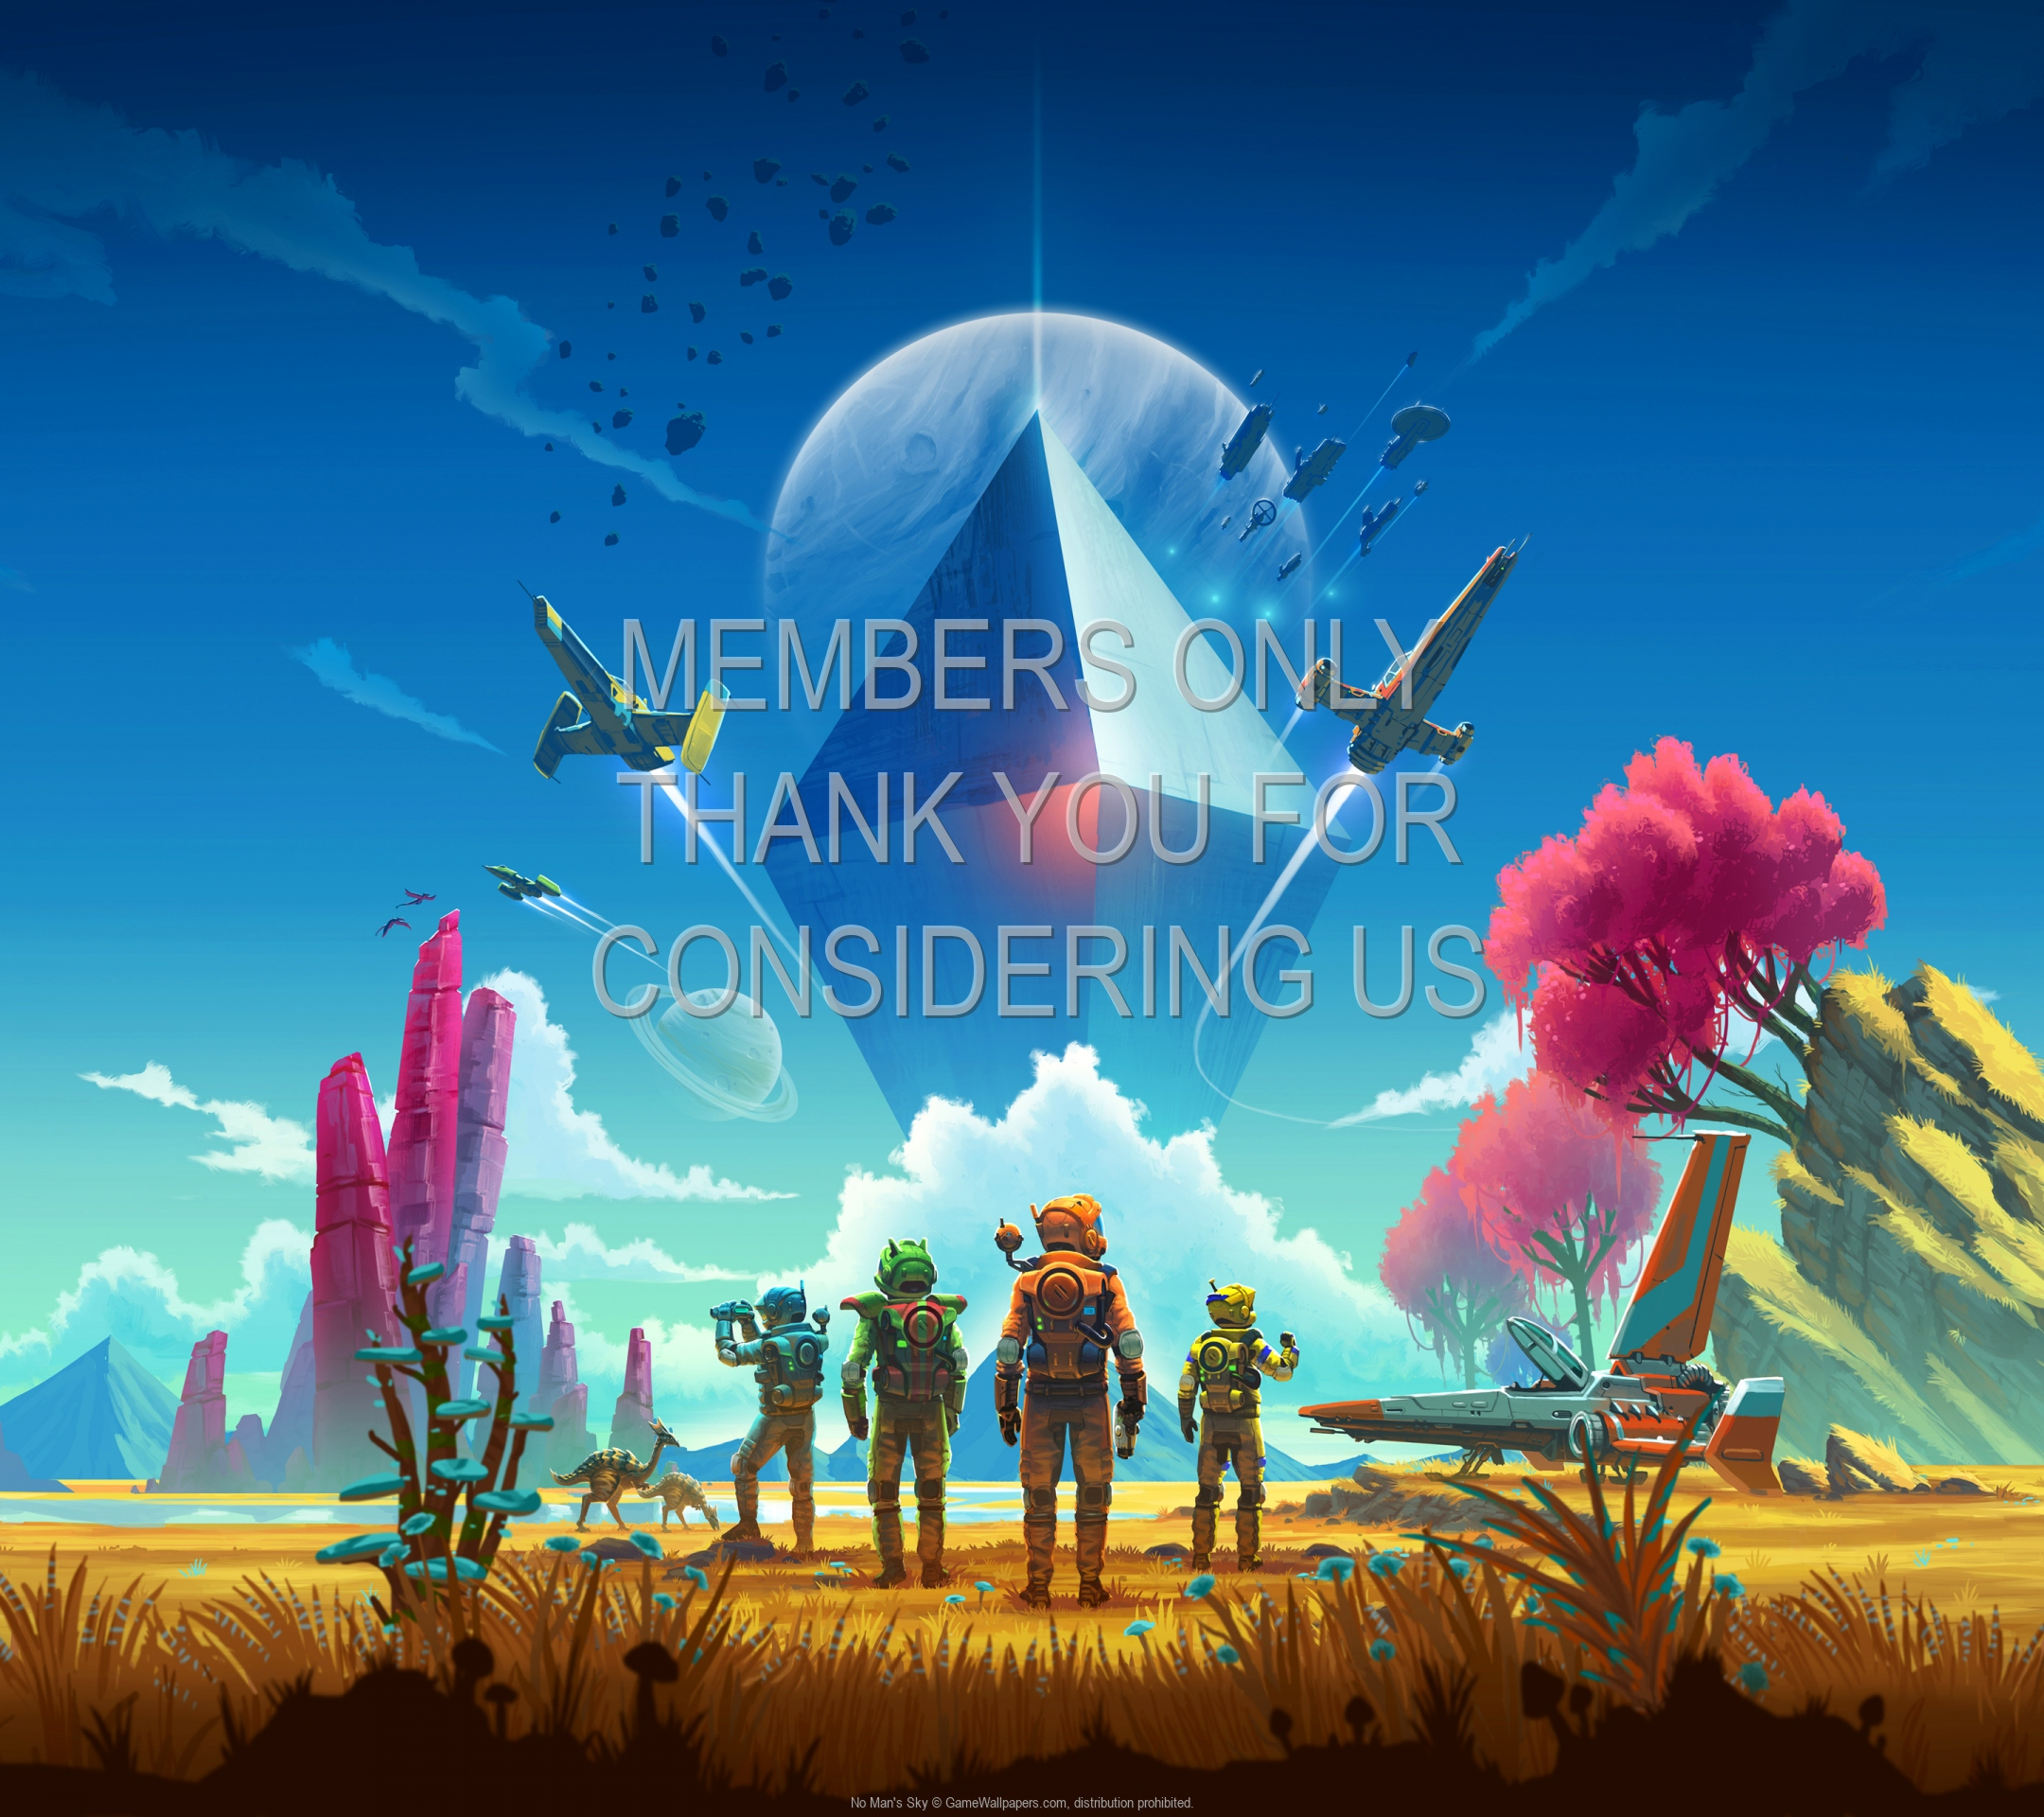 No Man's Sky 1920x1080 Mobile wallpaper or background 04